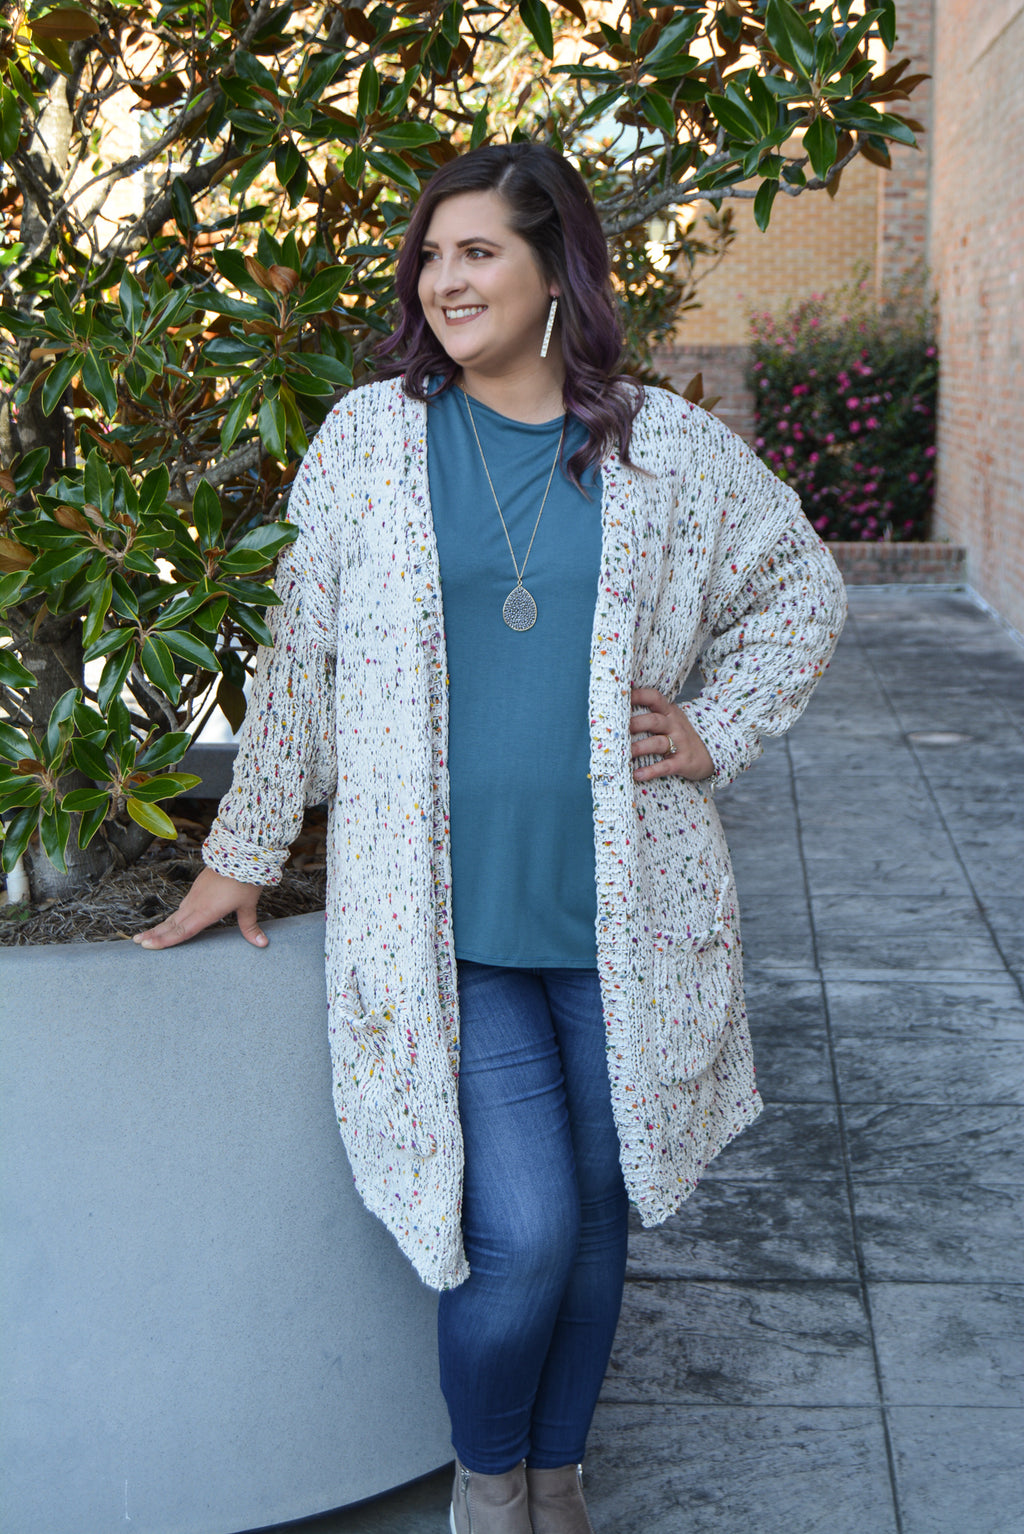 FUN-FETTI CARDIGAN